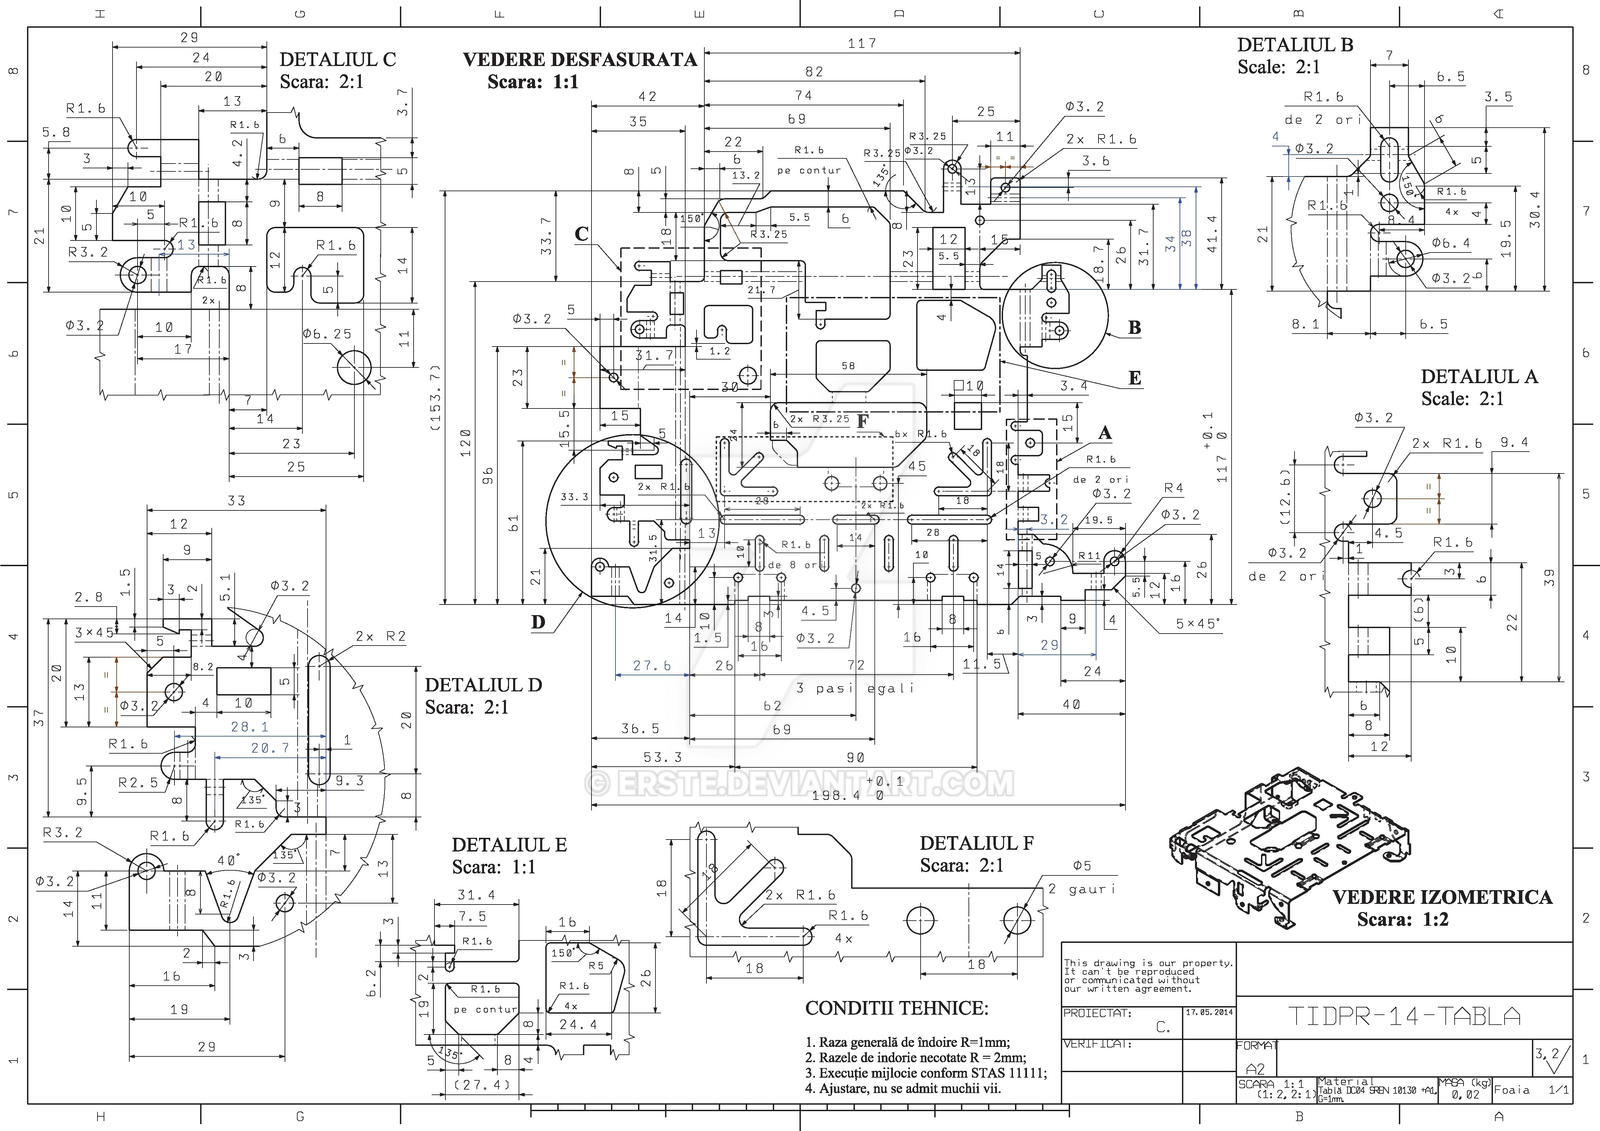 Engineering Drawing For A Complex Sheet Metal Part By